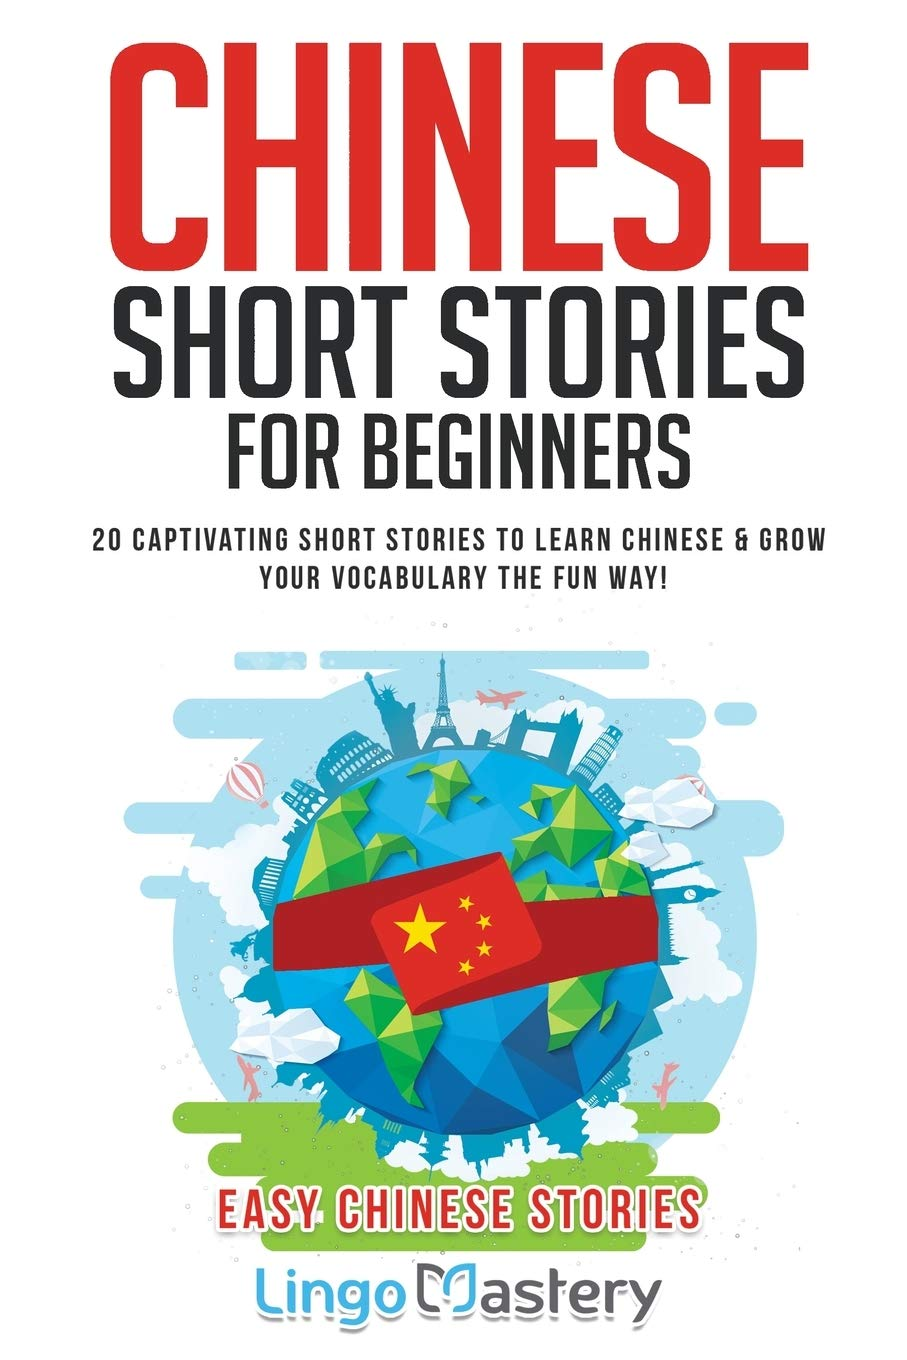 Chinese Short Stories for Beginners - Best books for learning Chinese